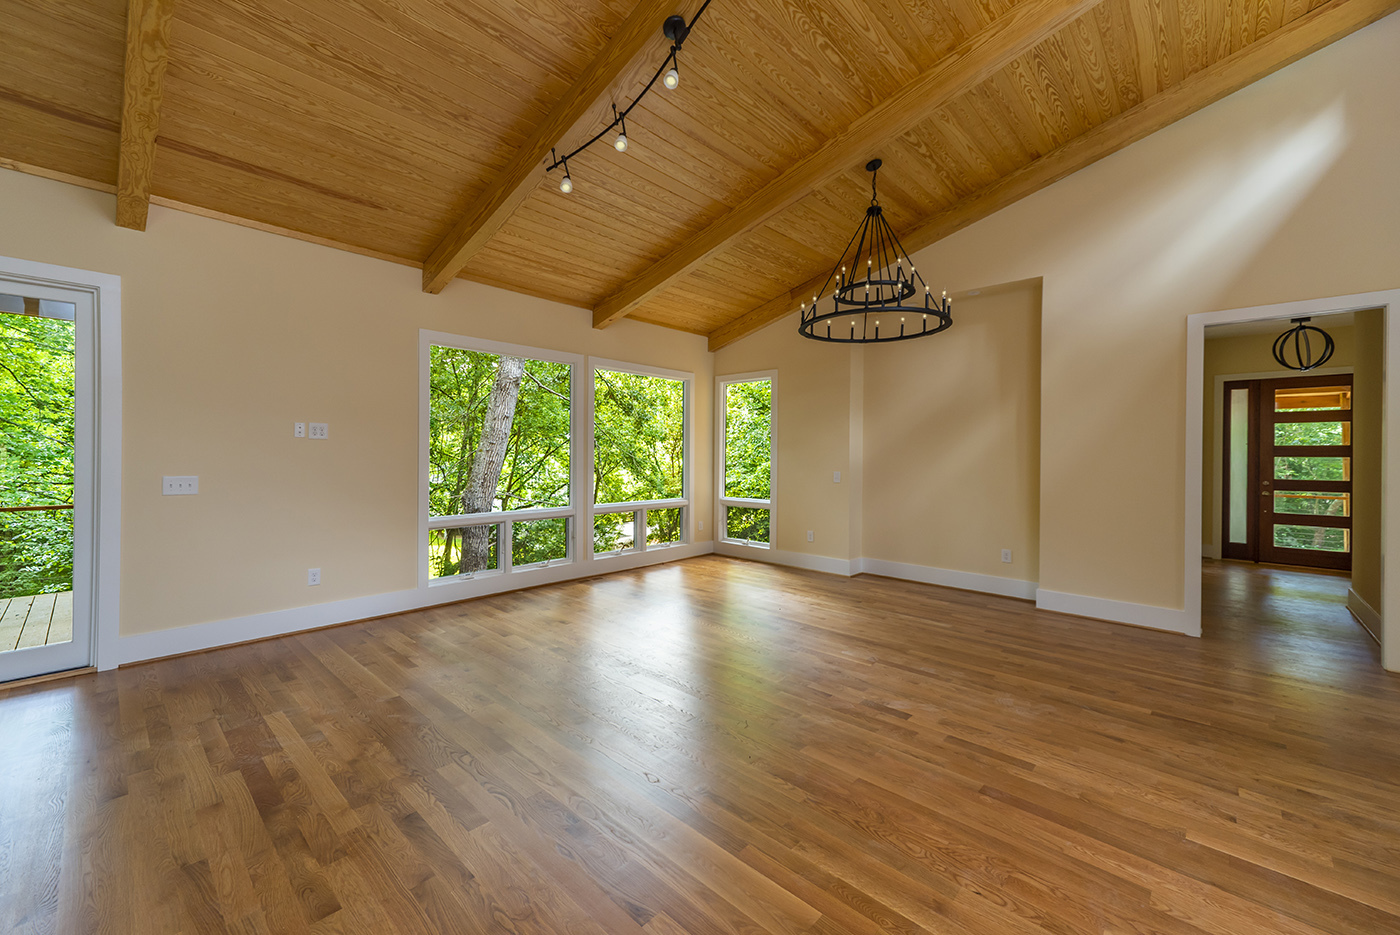 REAL ESTATE & Construction PHOTOGRAPHY,FARID SANI,RALEIGH,NC